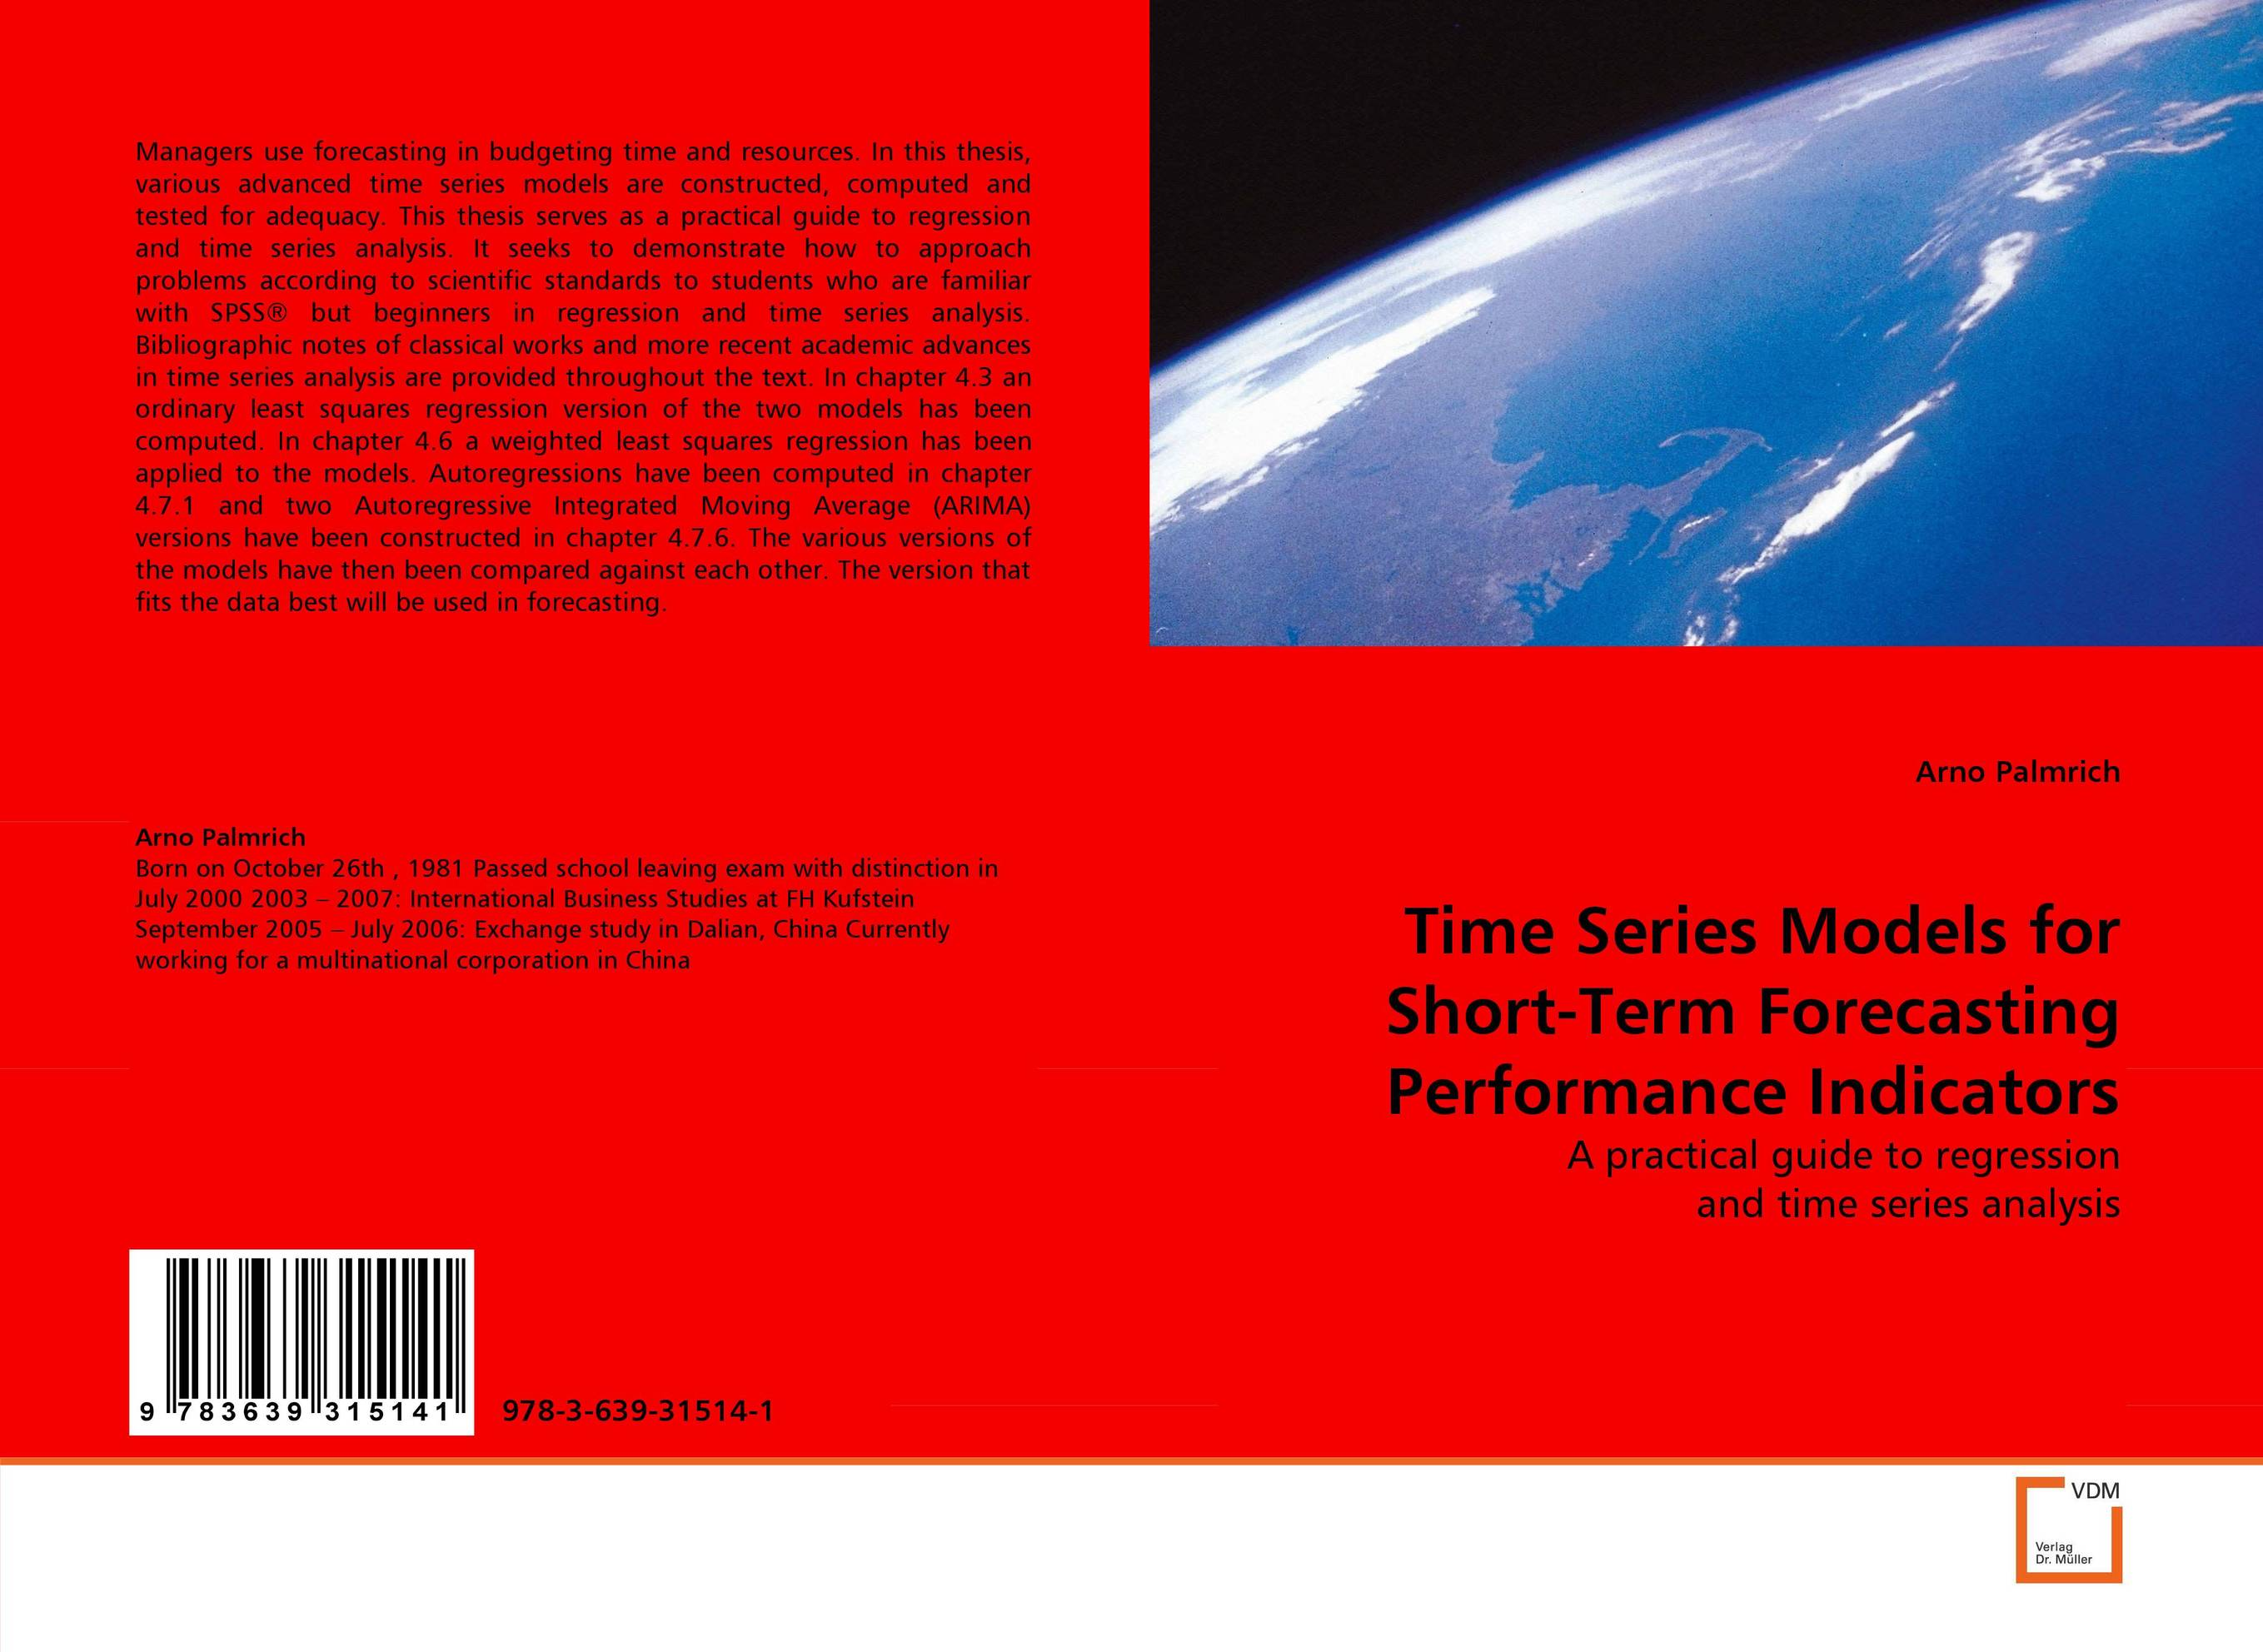 Time Series Models for Short-Term Forecasting Performance Indicators charles chase w demand driven forecasting a structured approach to forecasting